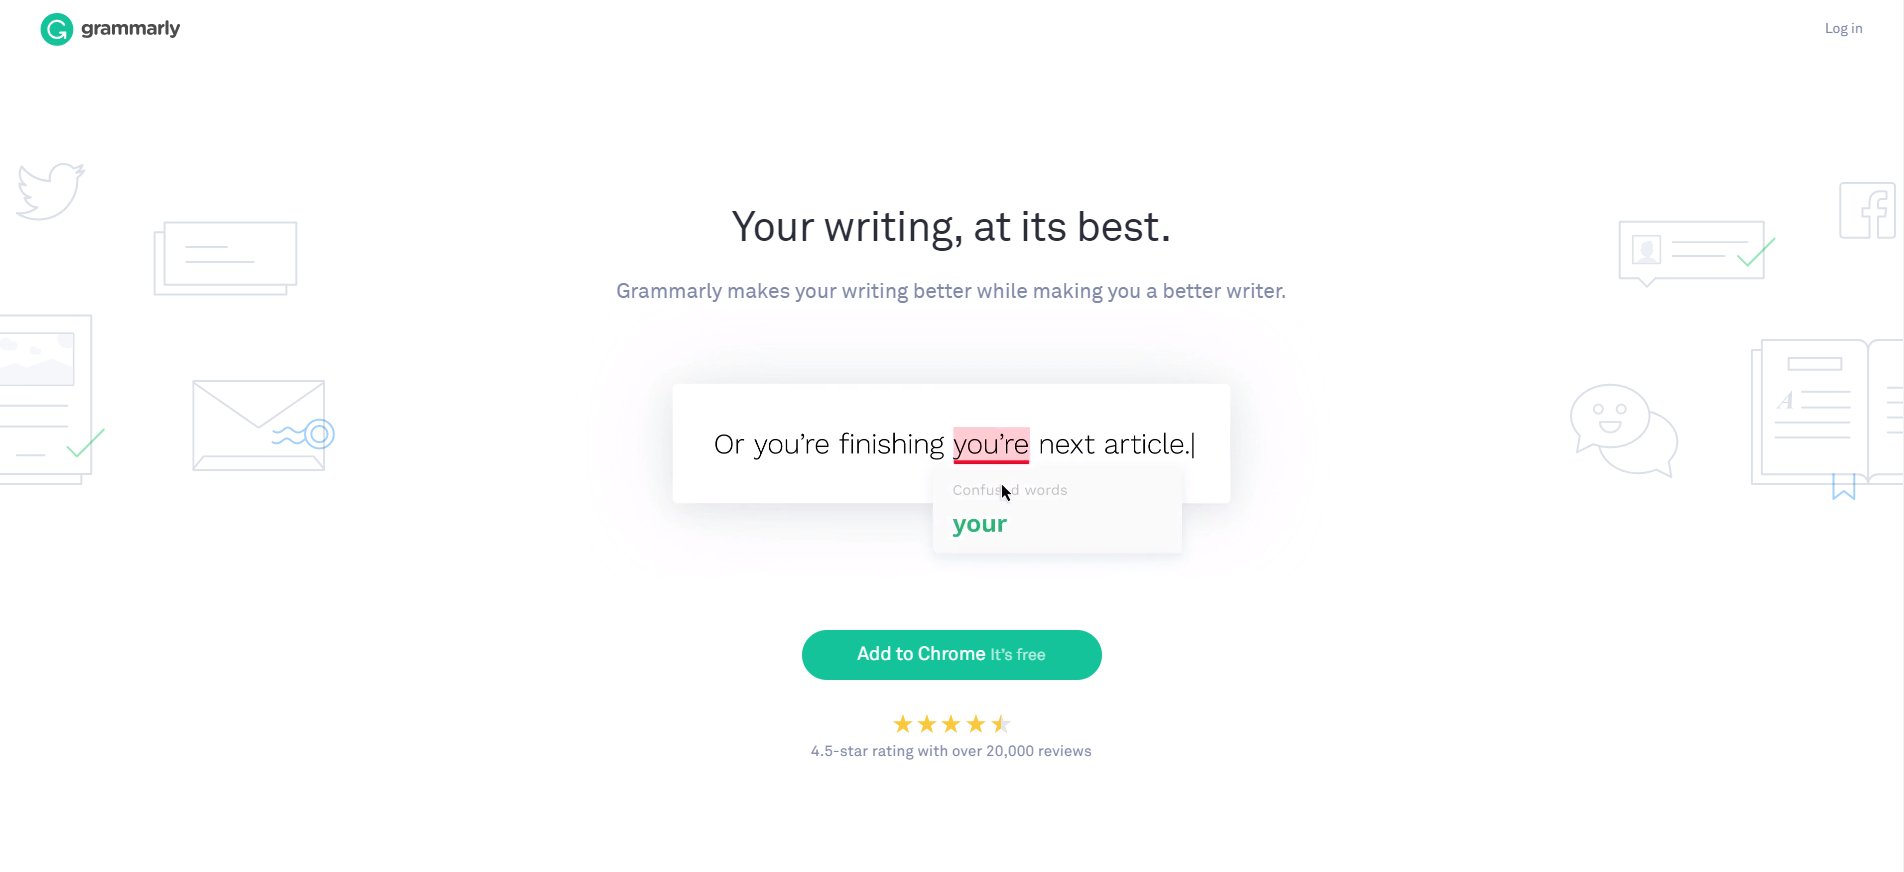 grammarly landing page example